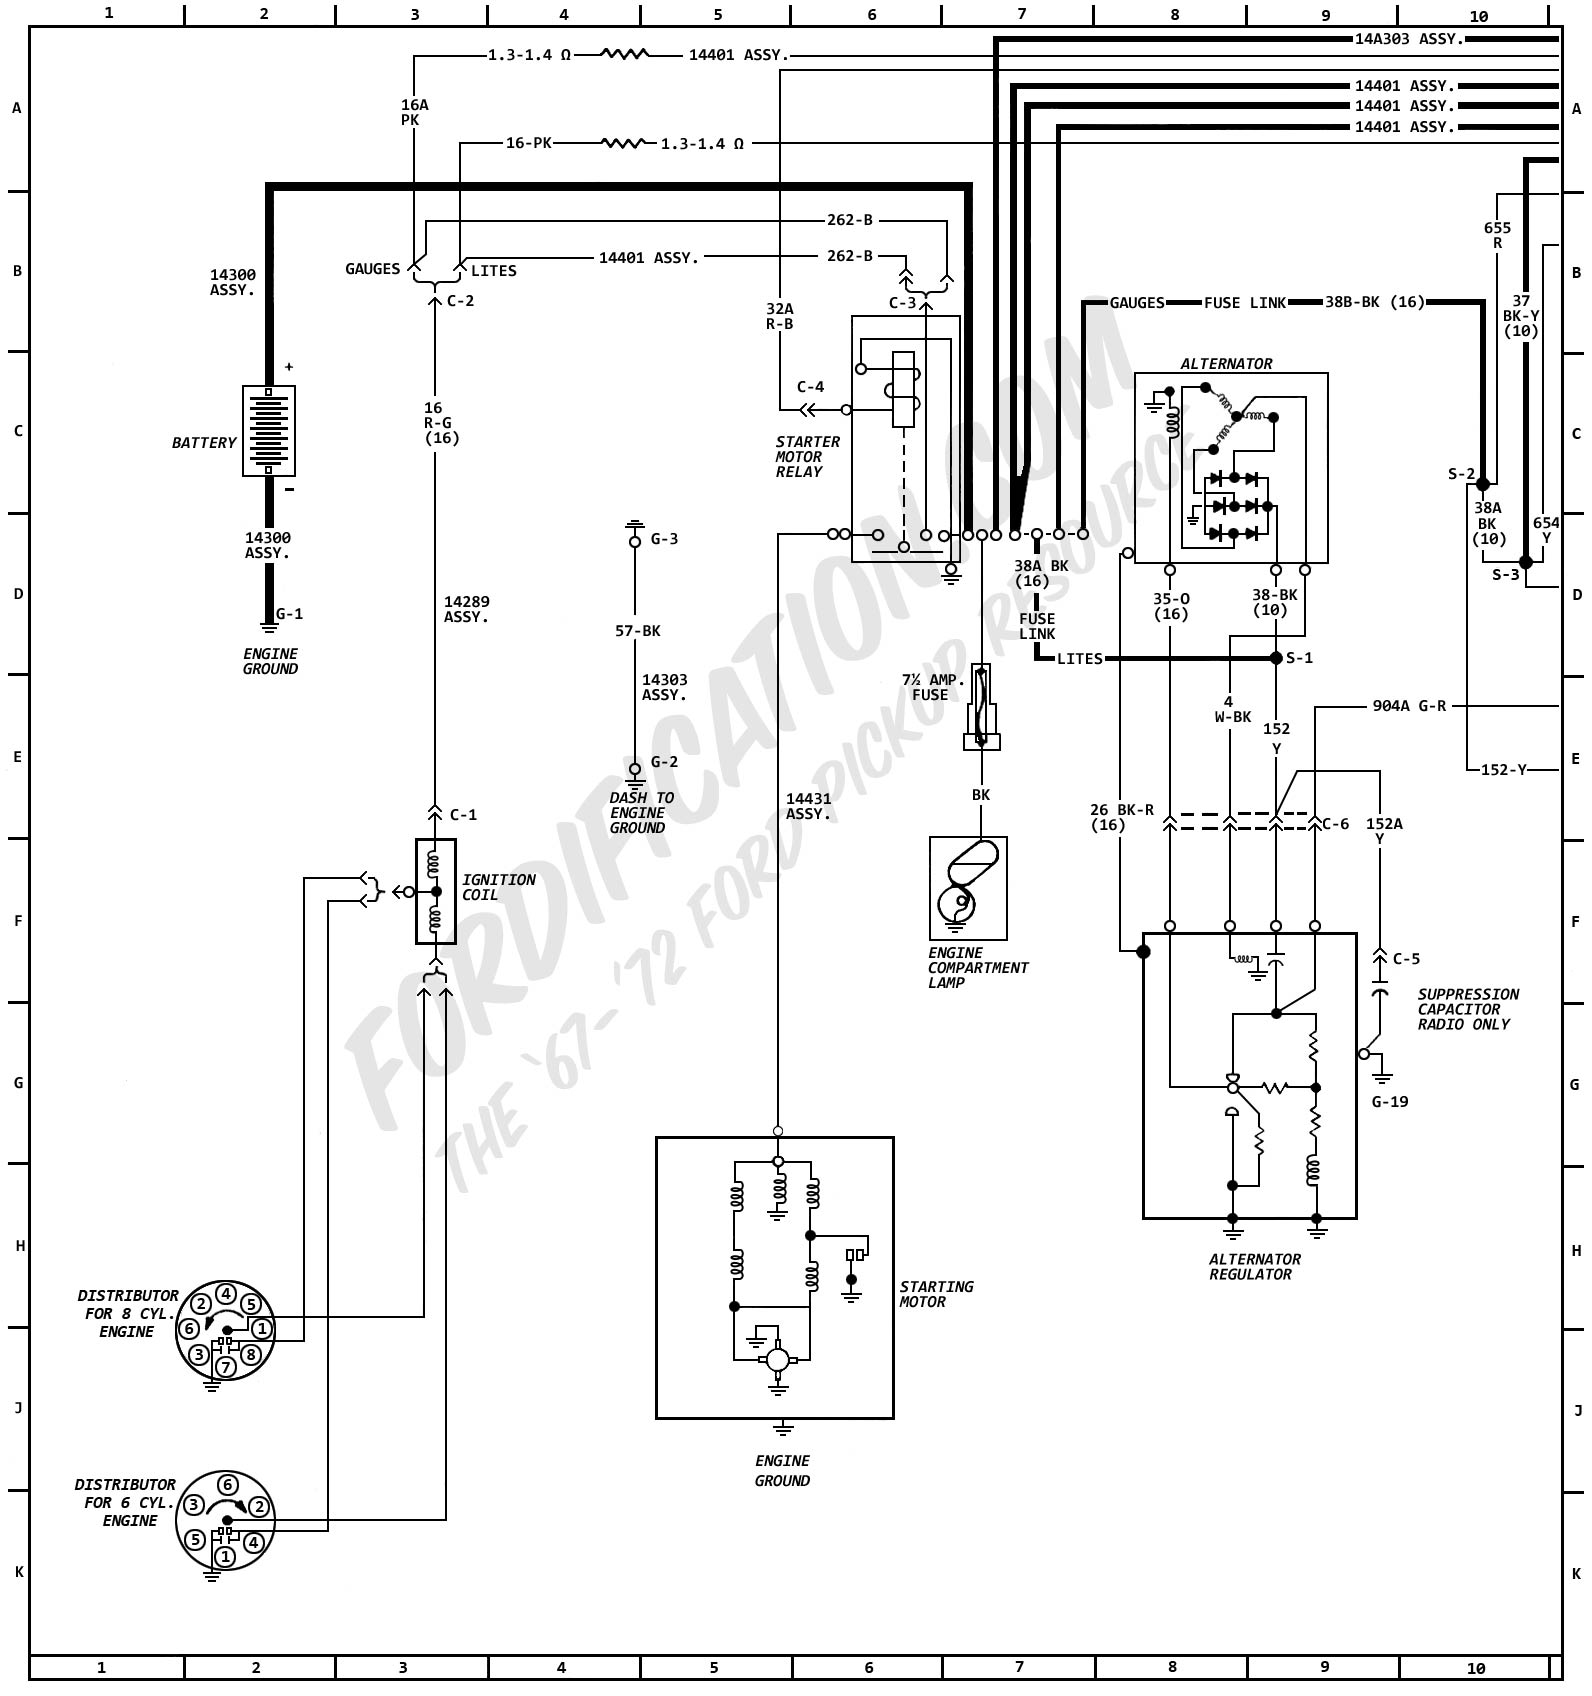 1972 Ford Truck Wiring Diagrams - FORDification.com | Ford F100 Turn Signal Wiring Diagrams |  | FORDification.com